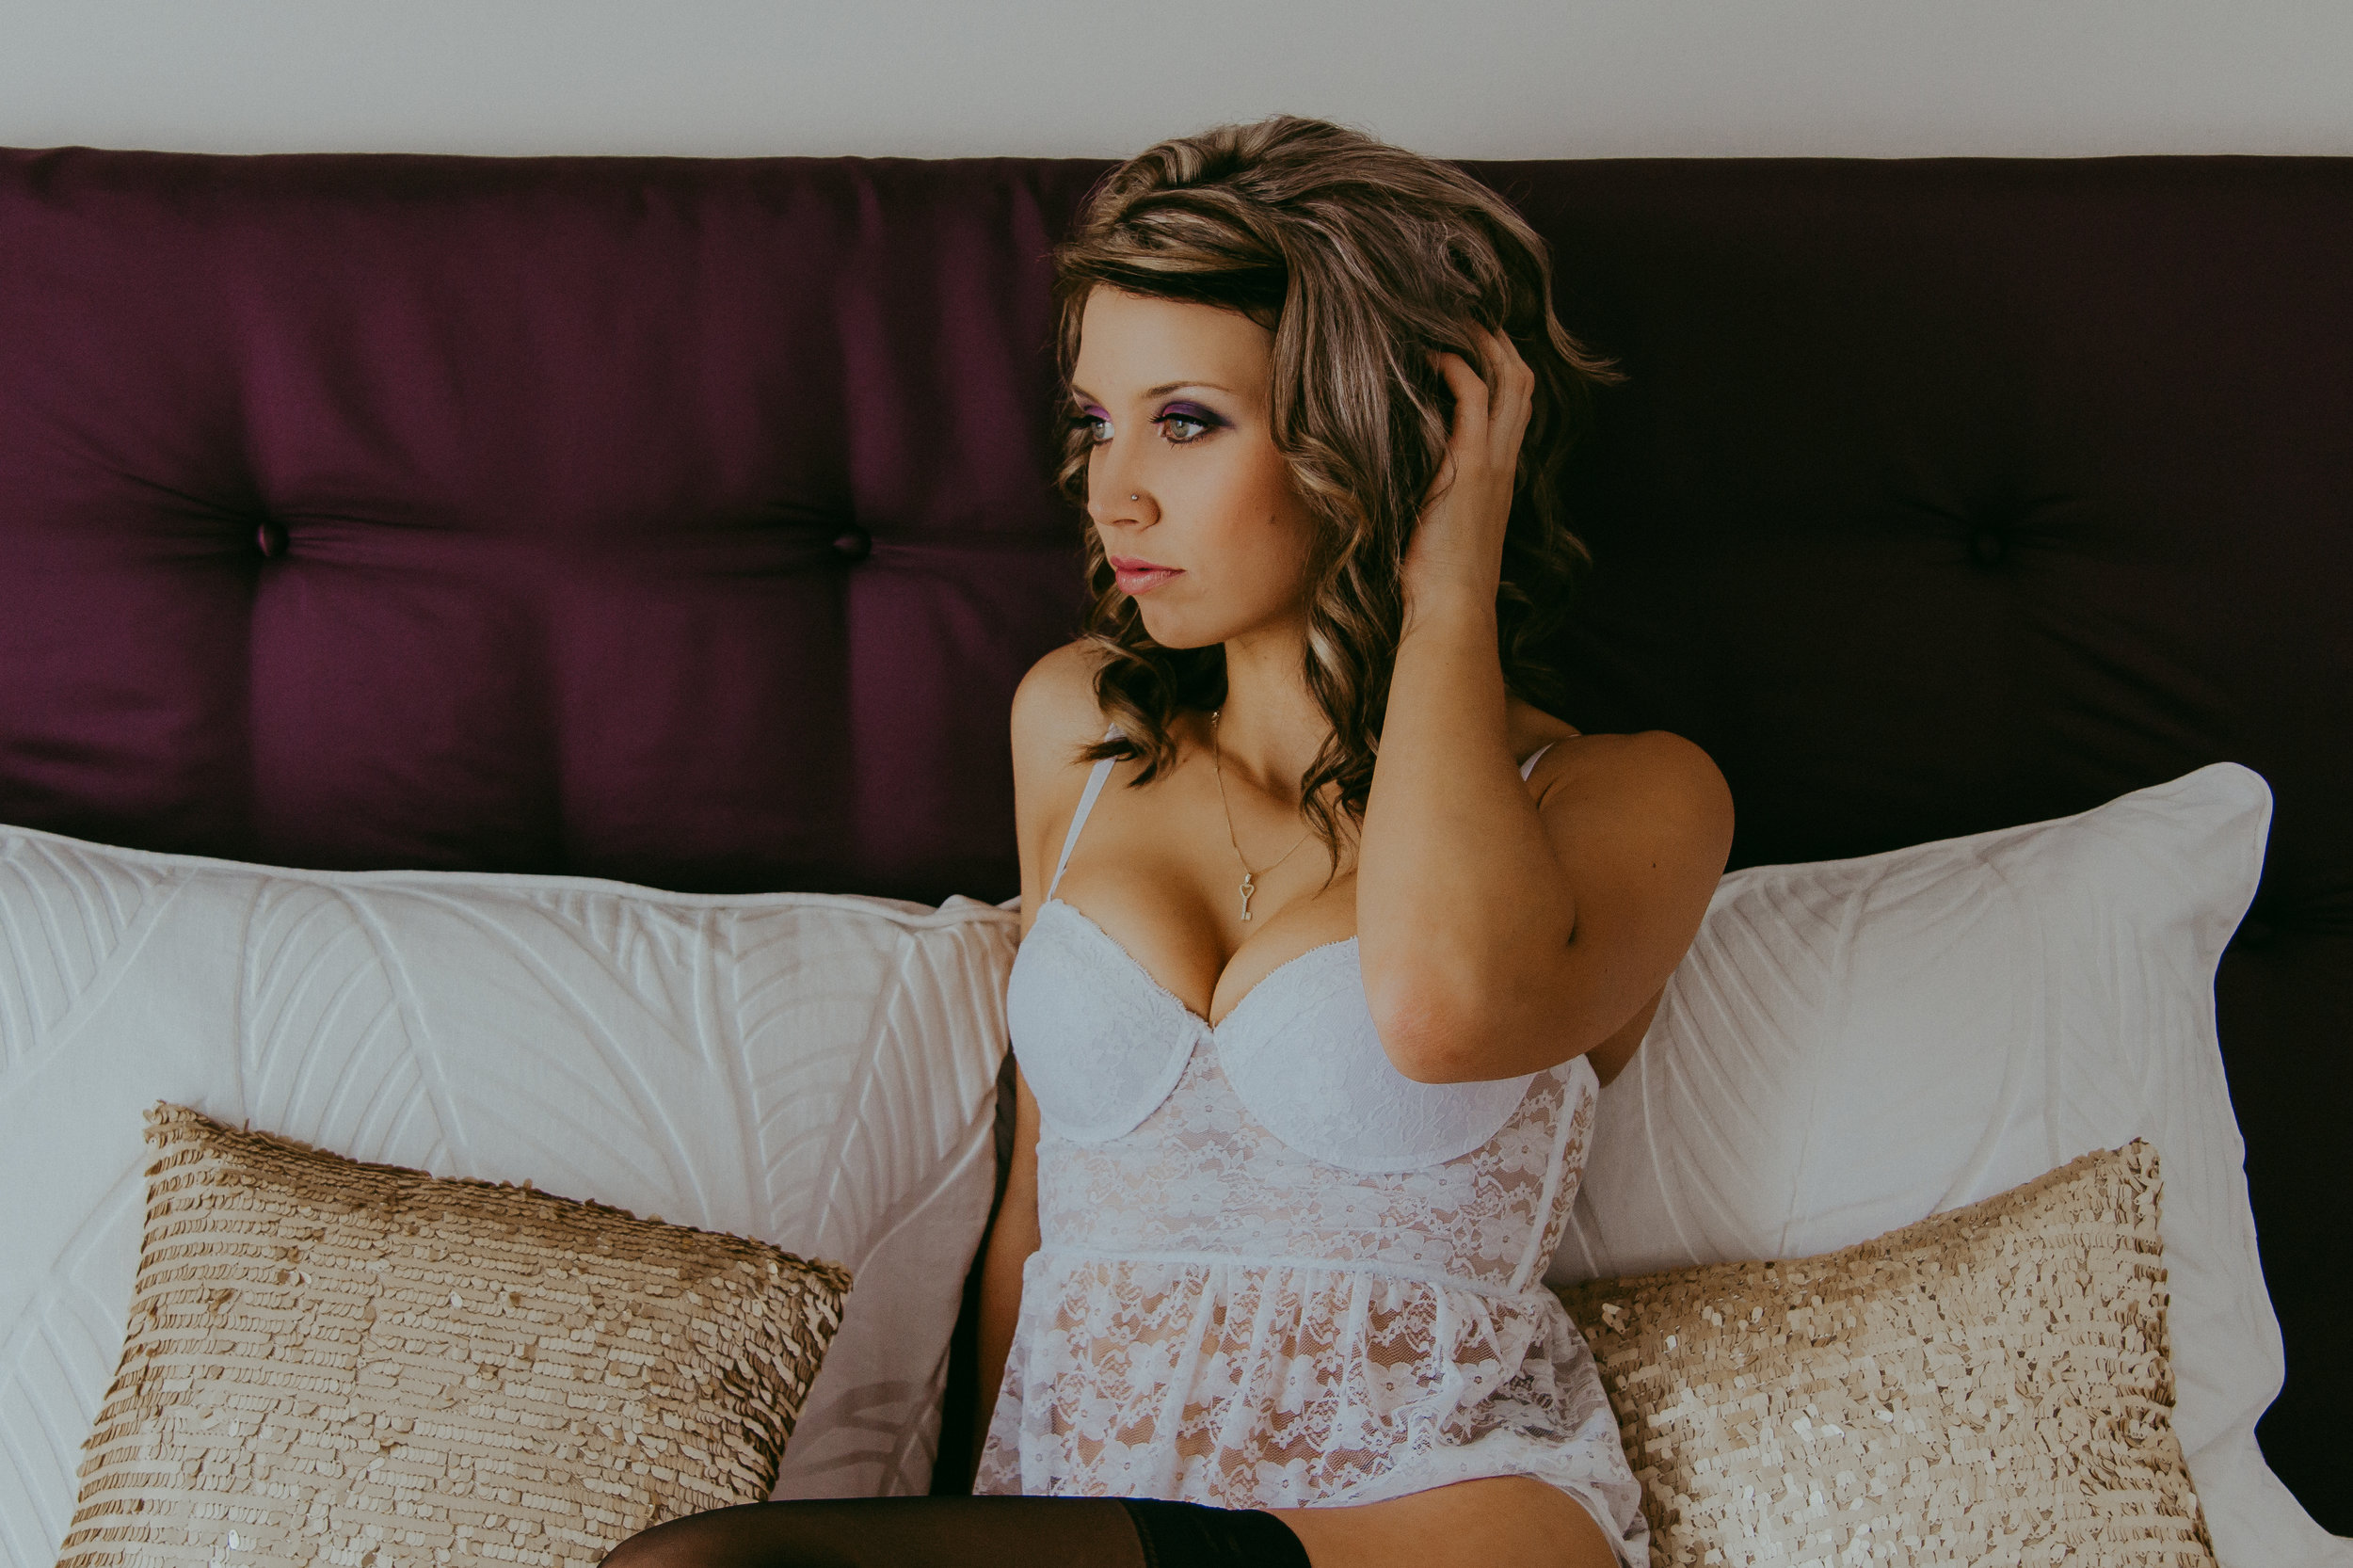 Riley - I loved my session with Courtney! She did a beautiful job on my photos for my boudoir shoot and was super fun and energetic to work with. Had lots of great suggestions that helped make my photos beautiful! Thank you so much, it was a pleasure working with you!